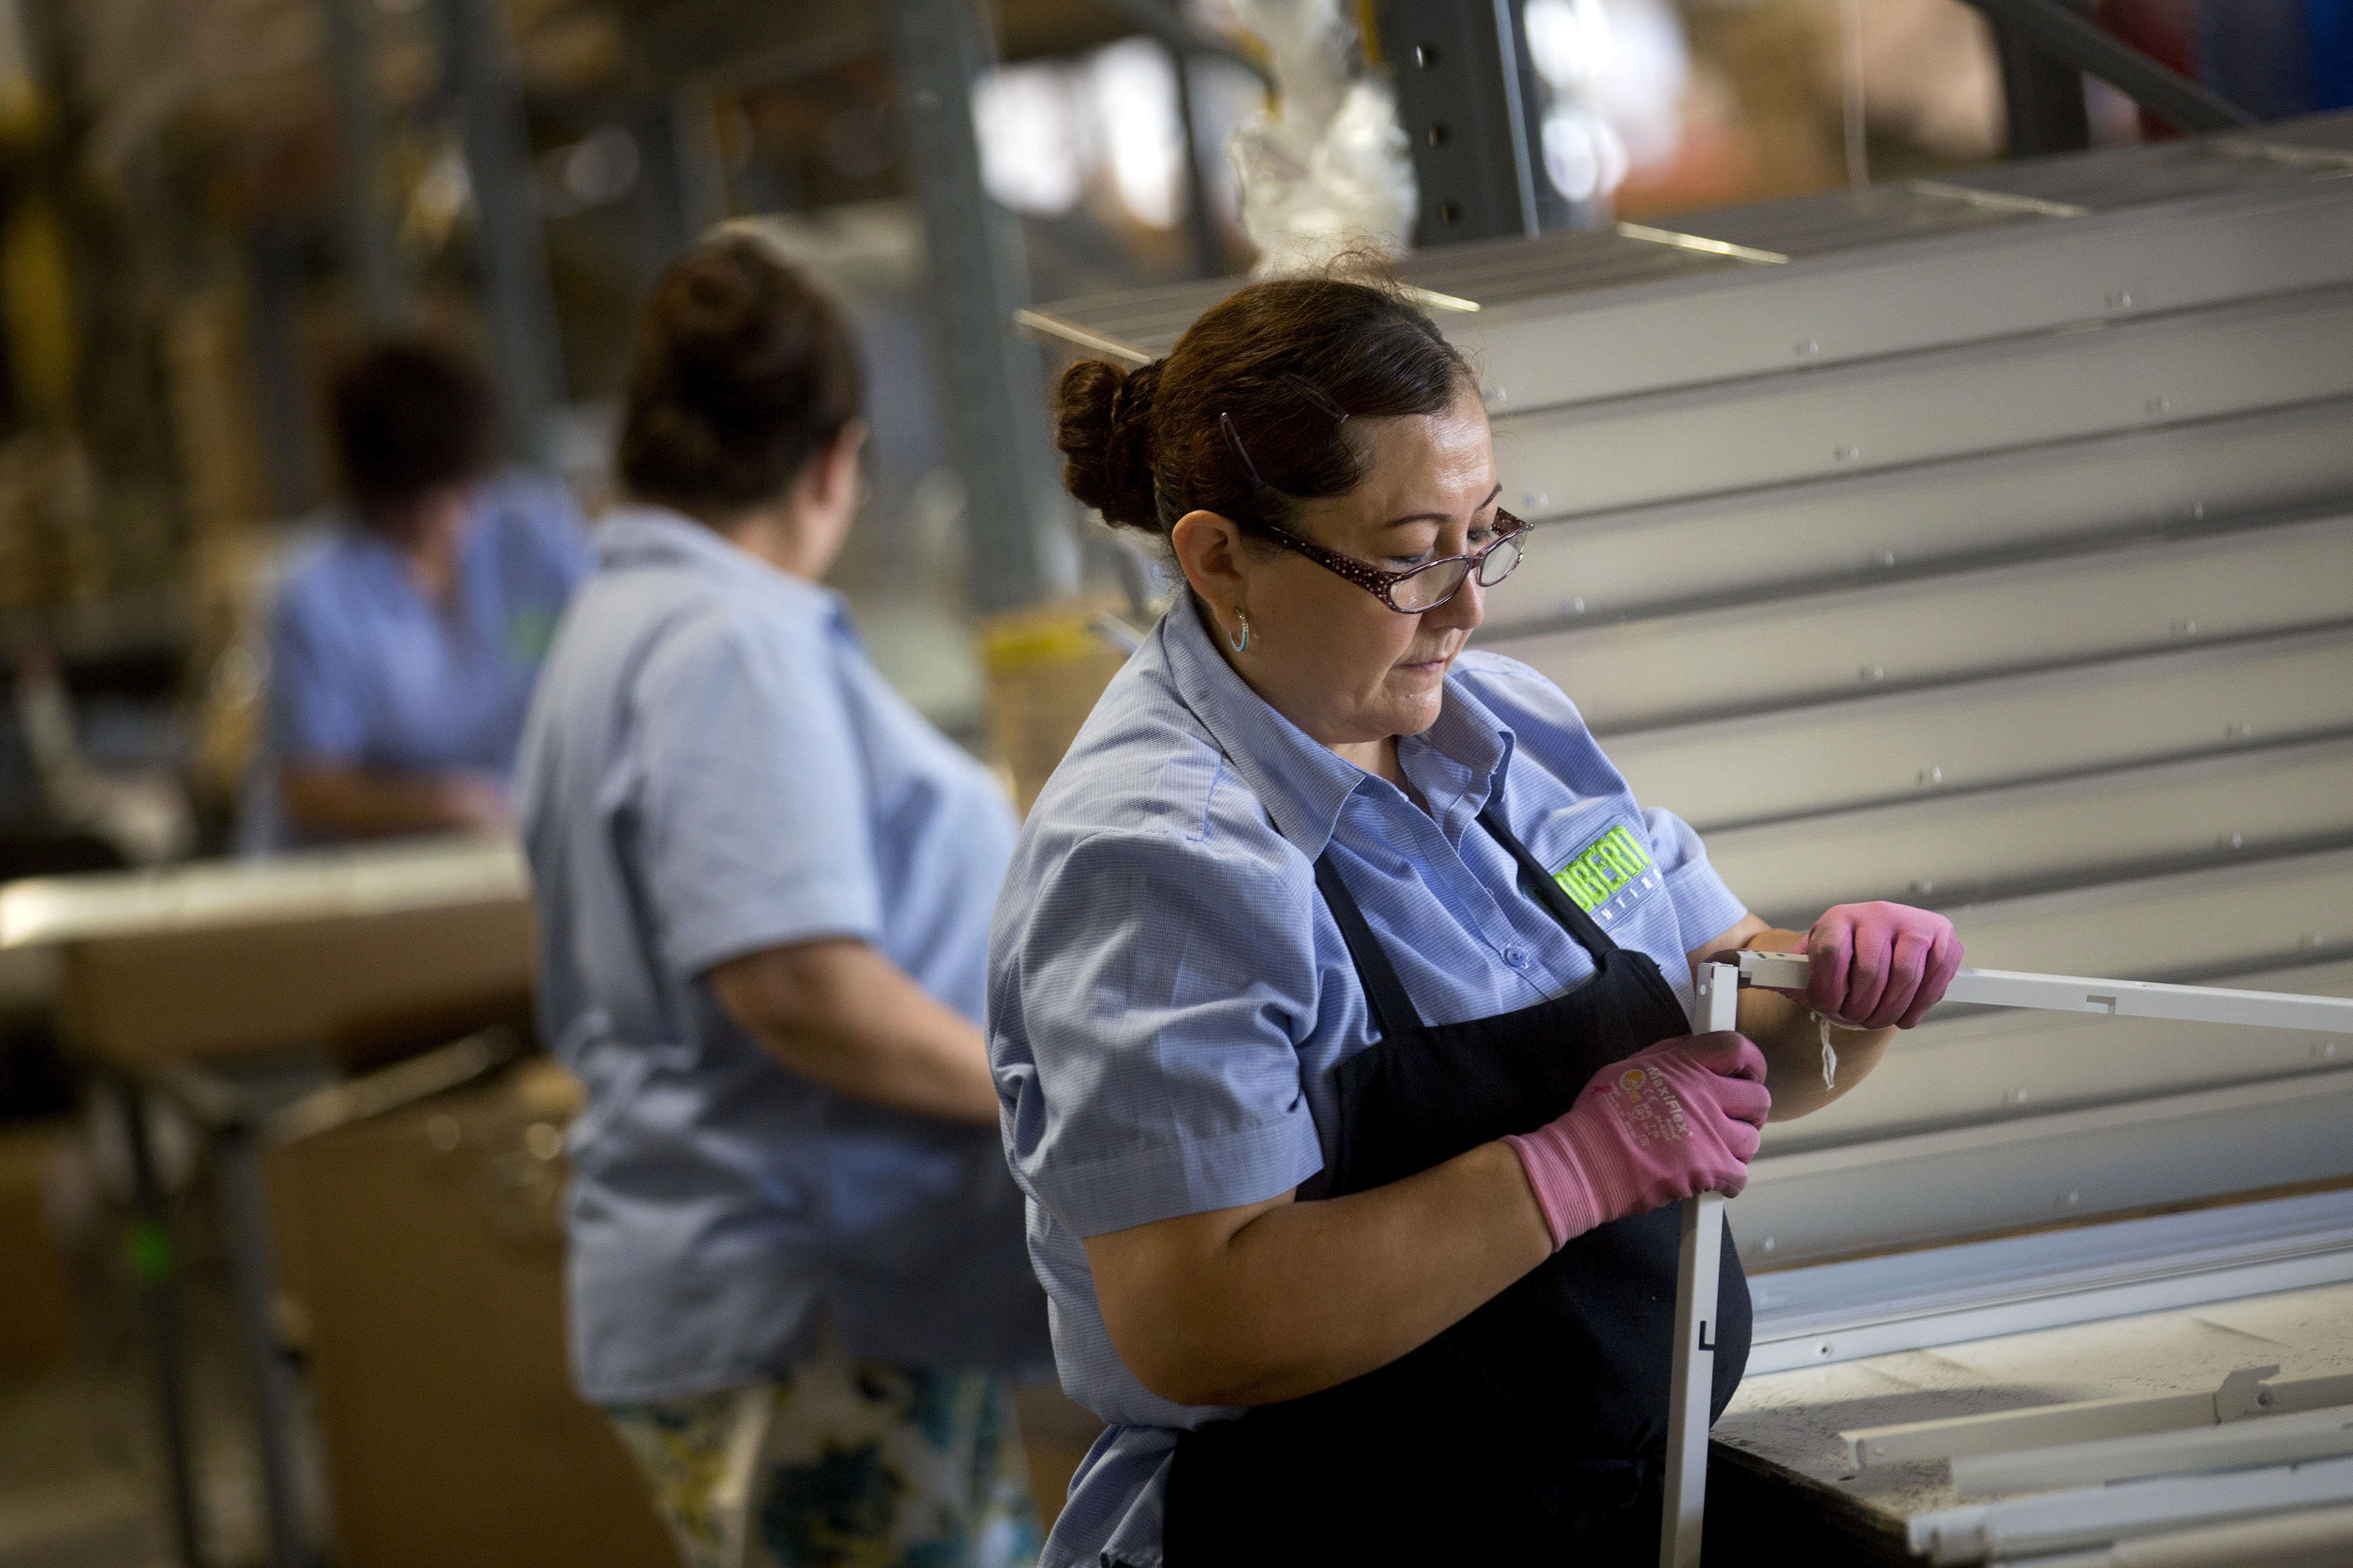 Operations At Mobern Lighting Co. Ahead Of Richmond Fed's Manufacturing Survey